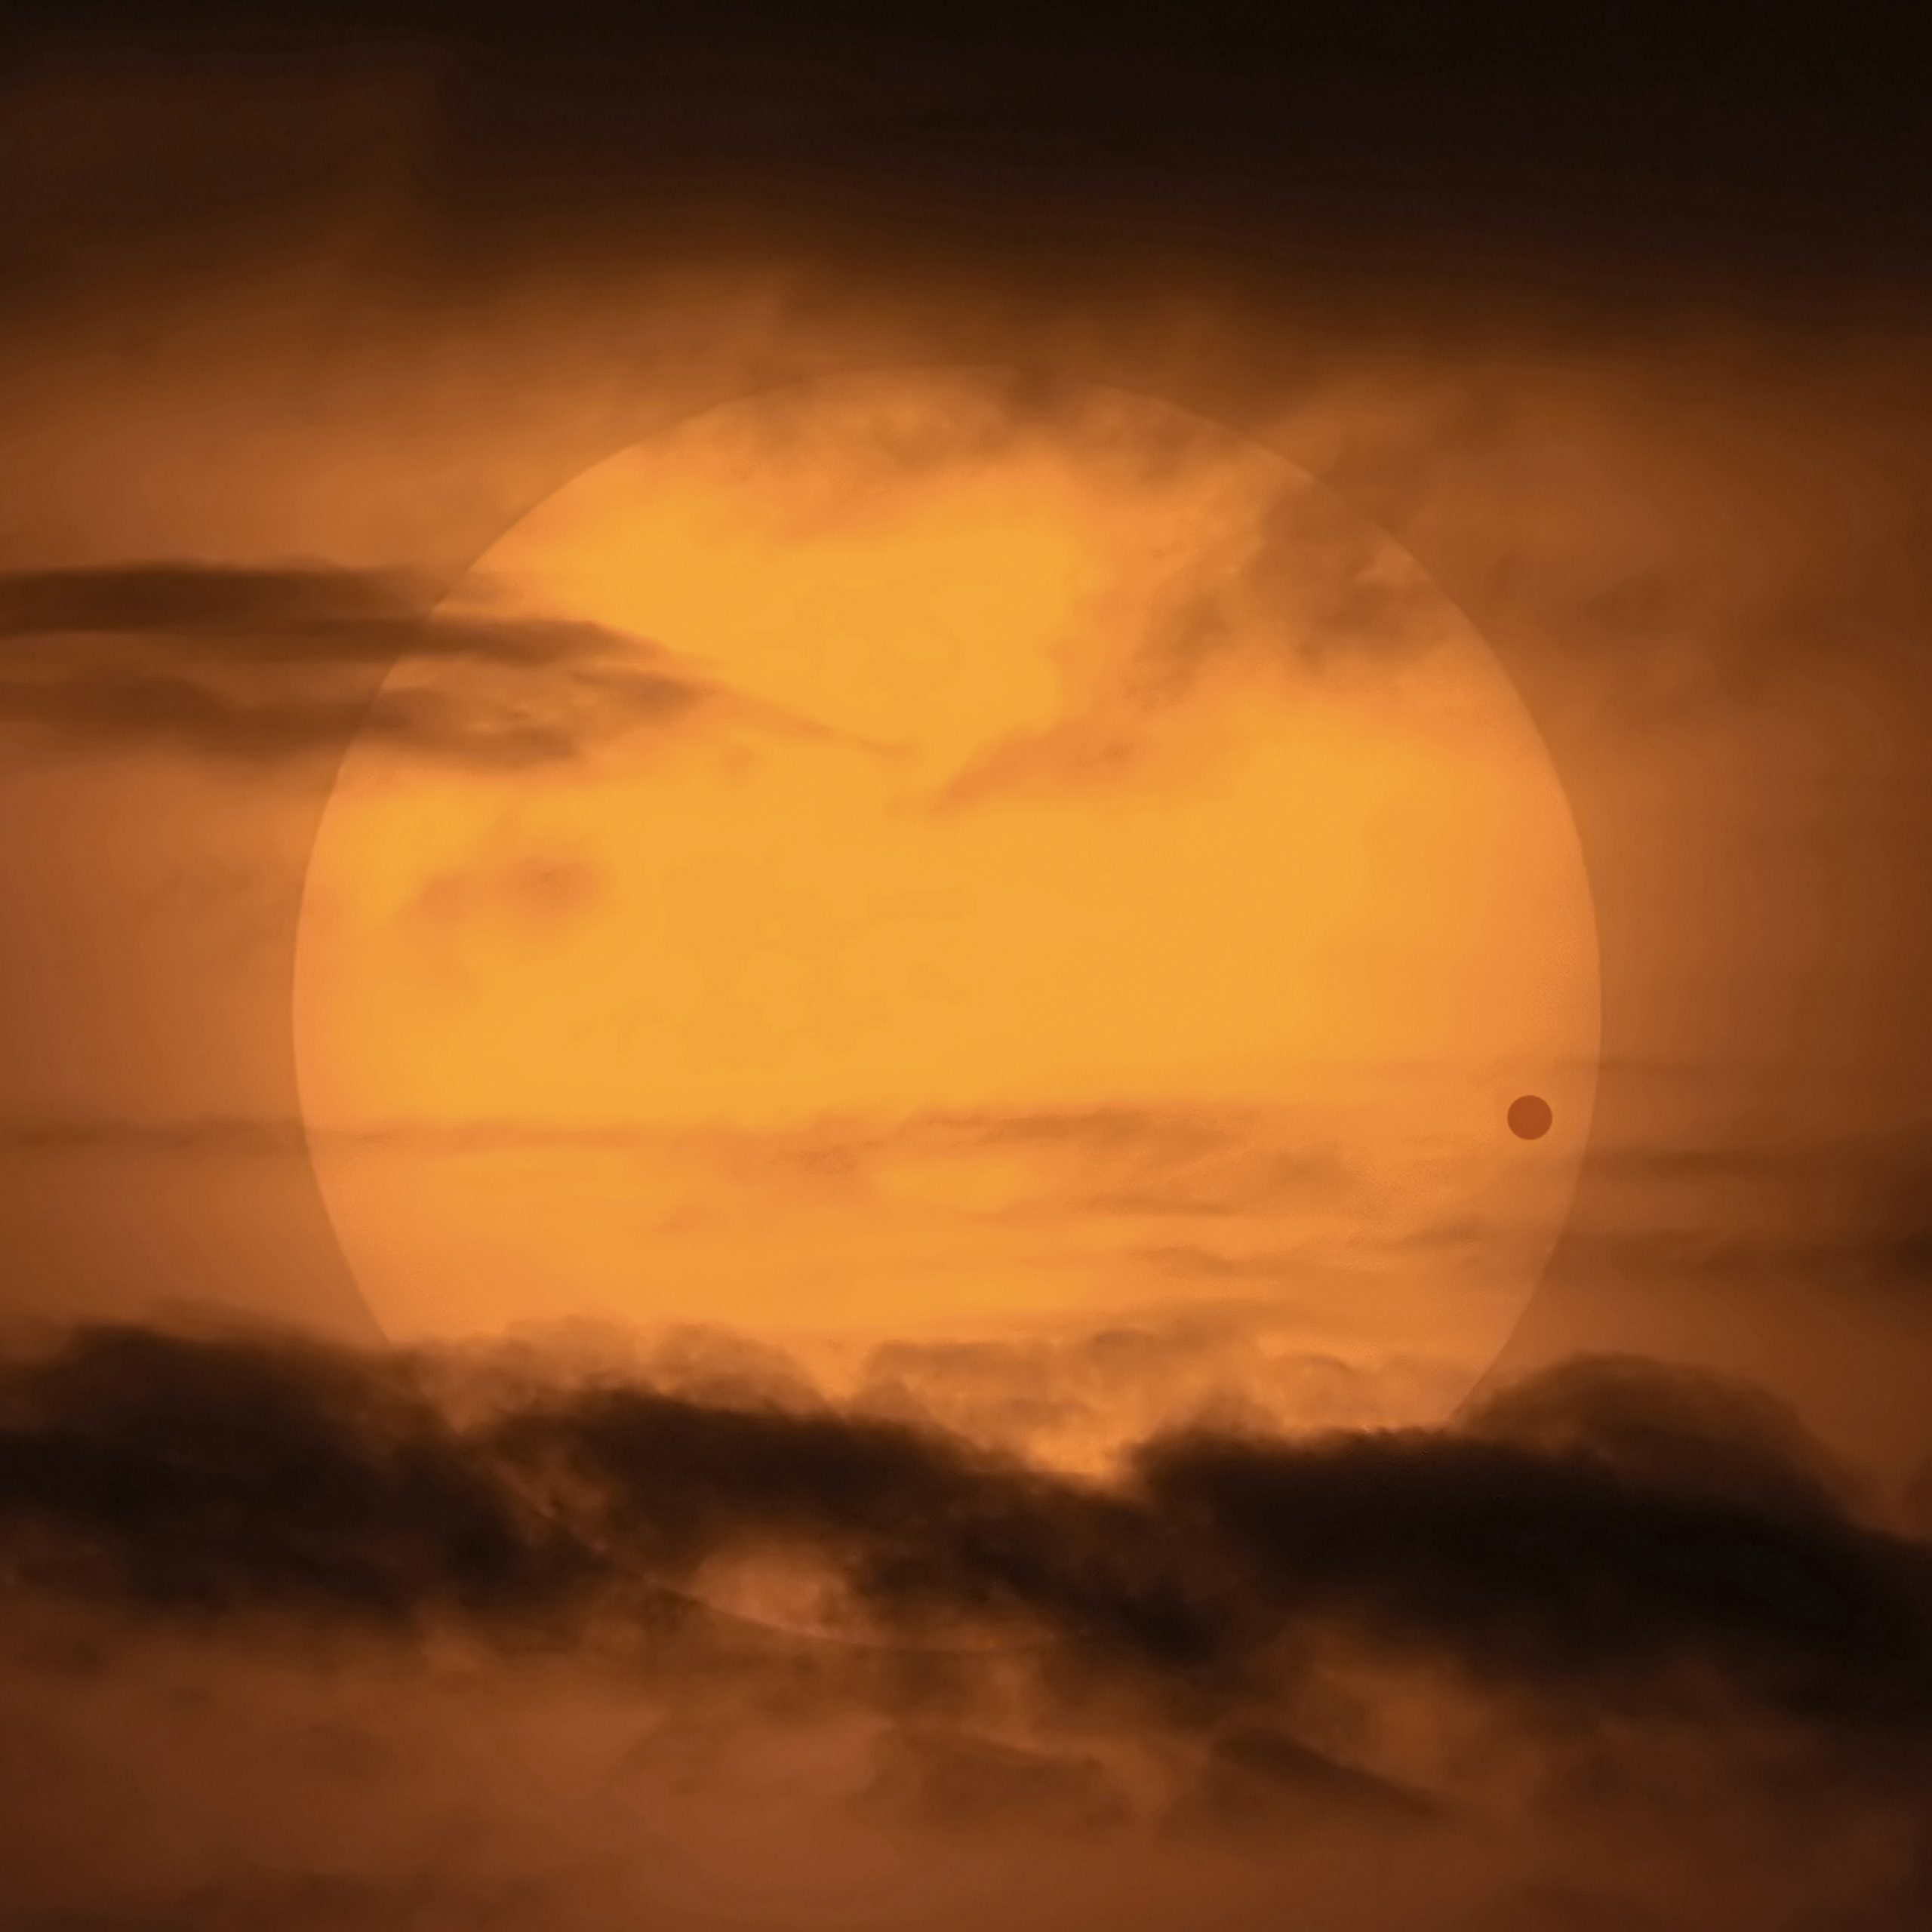 Image of Venus transiting the sun in 2004. The planet is visible near the right edge of the sun.